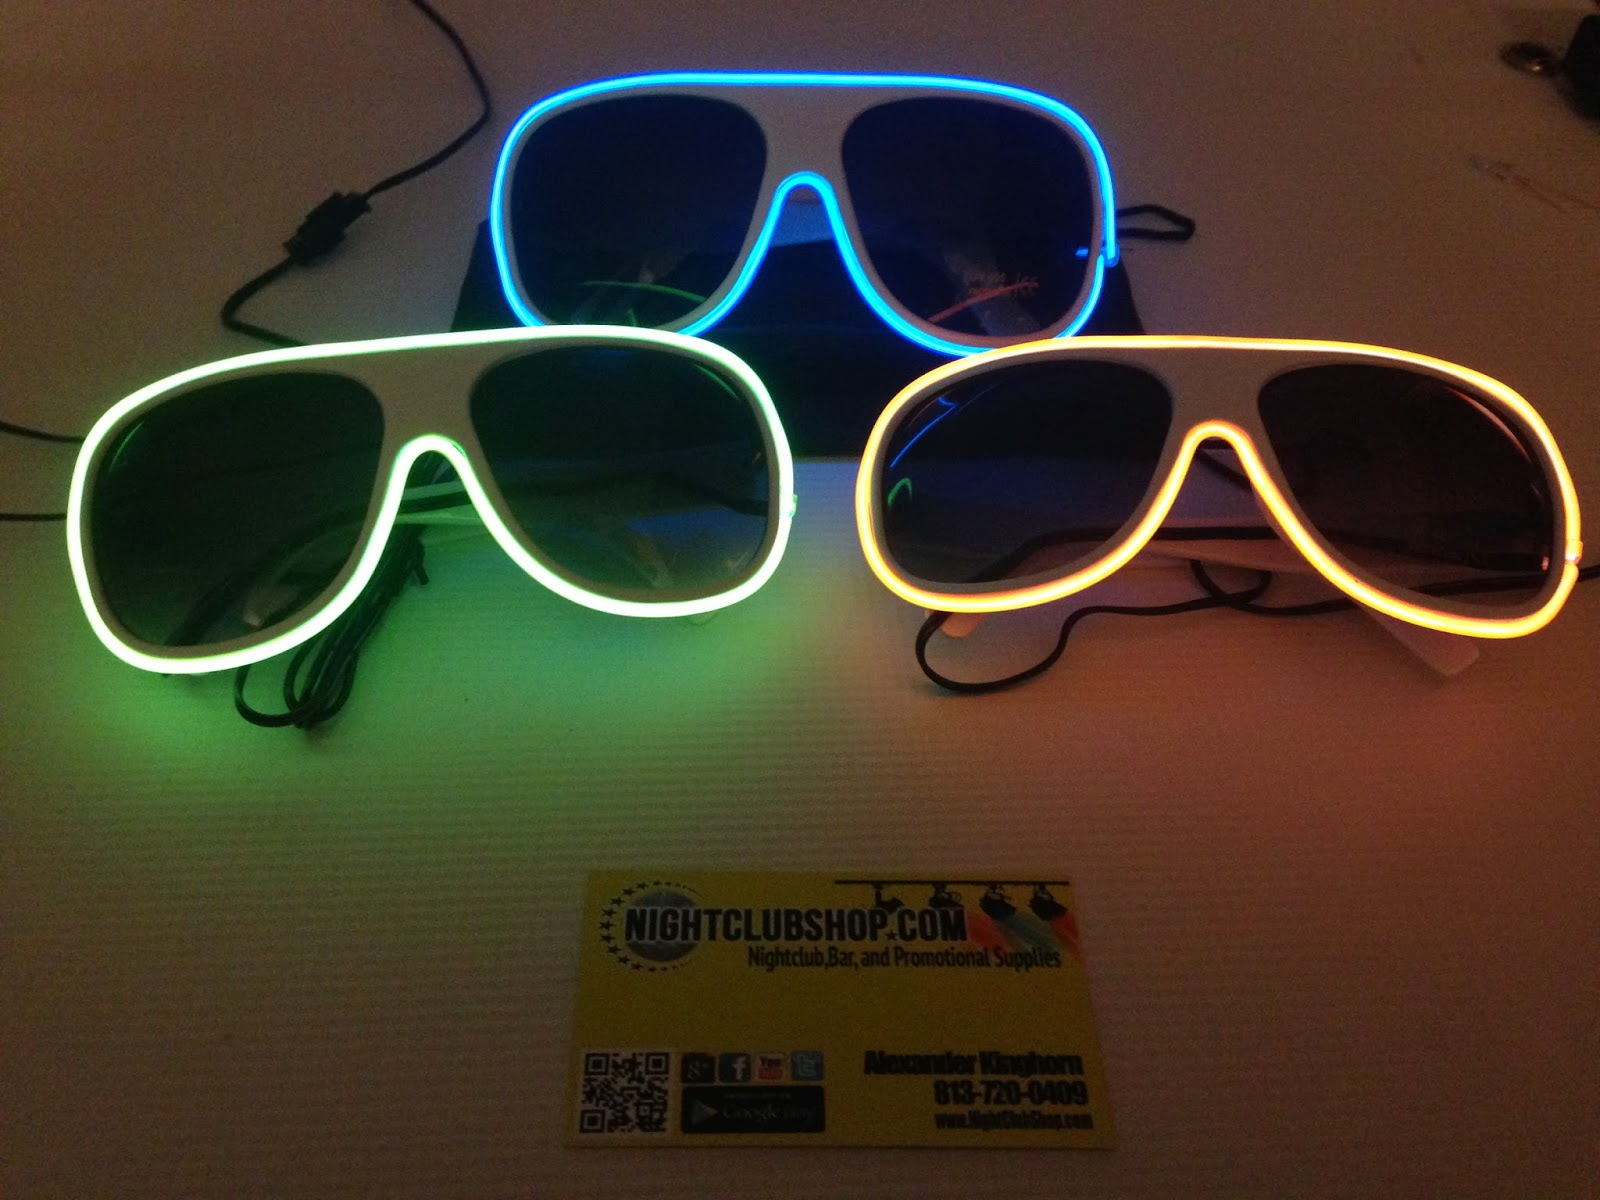 1be78d68a5138 NEW LED AVIATOR SUN GLASSES Are IN! LED Light Up Illuminated Sun ...